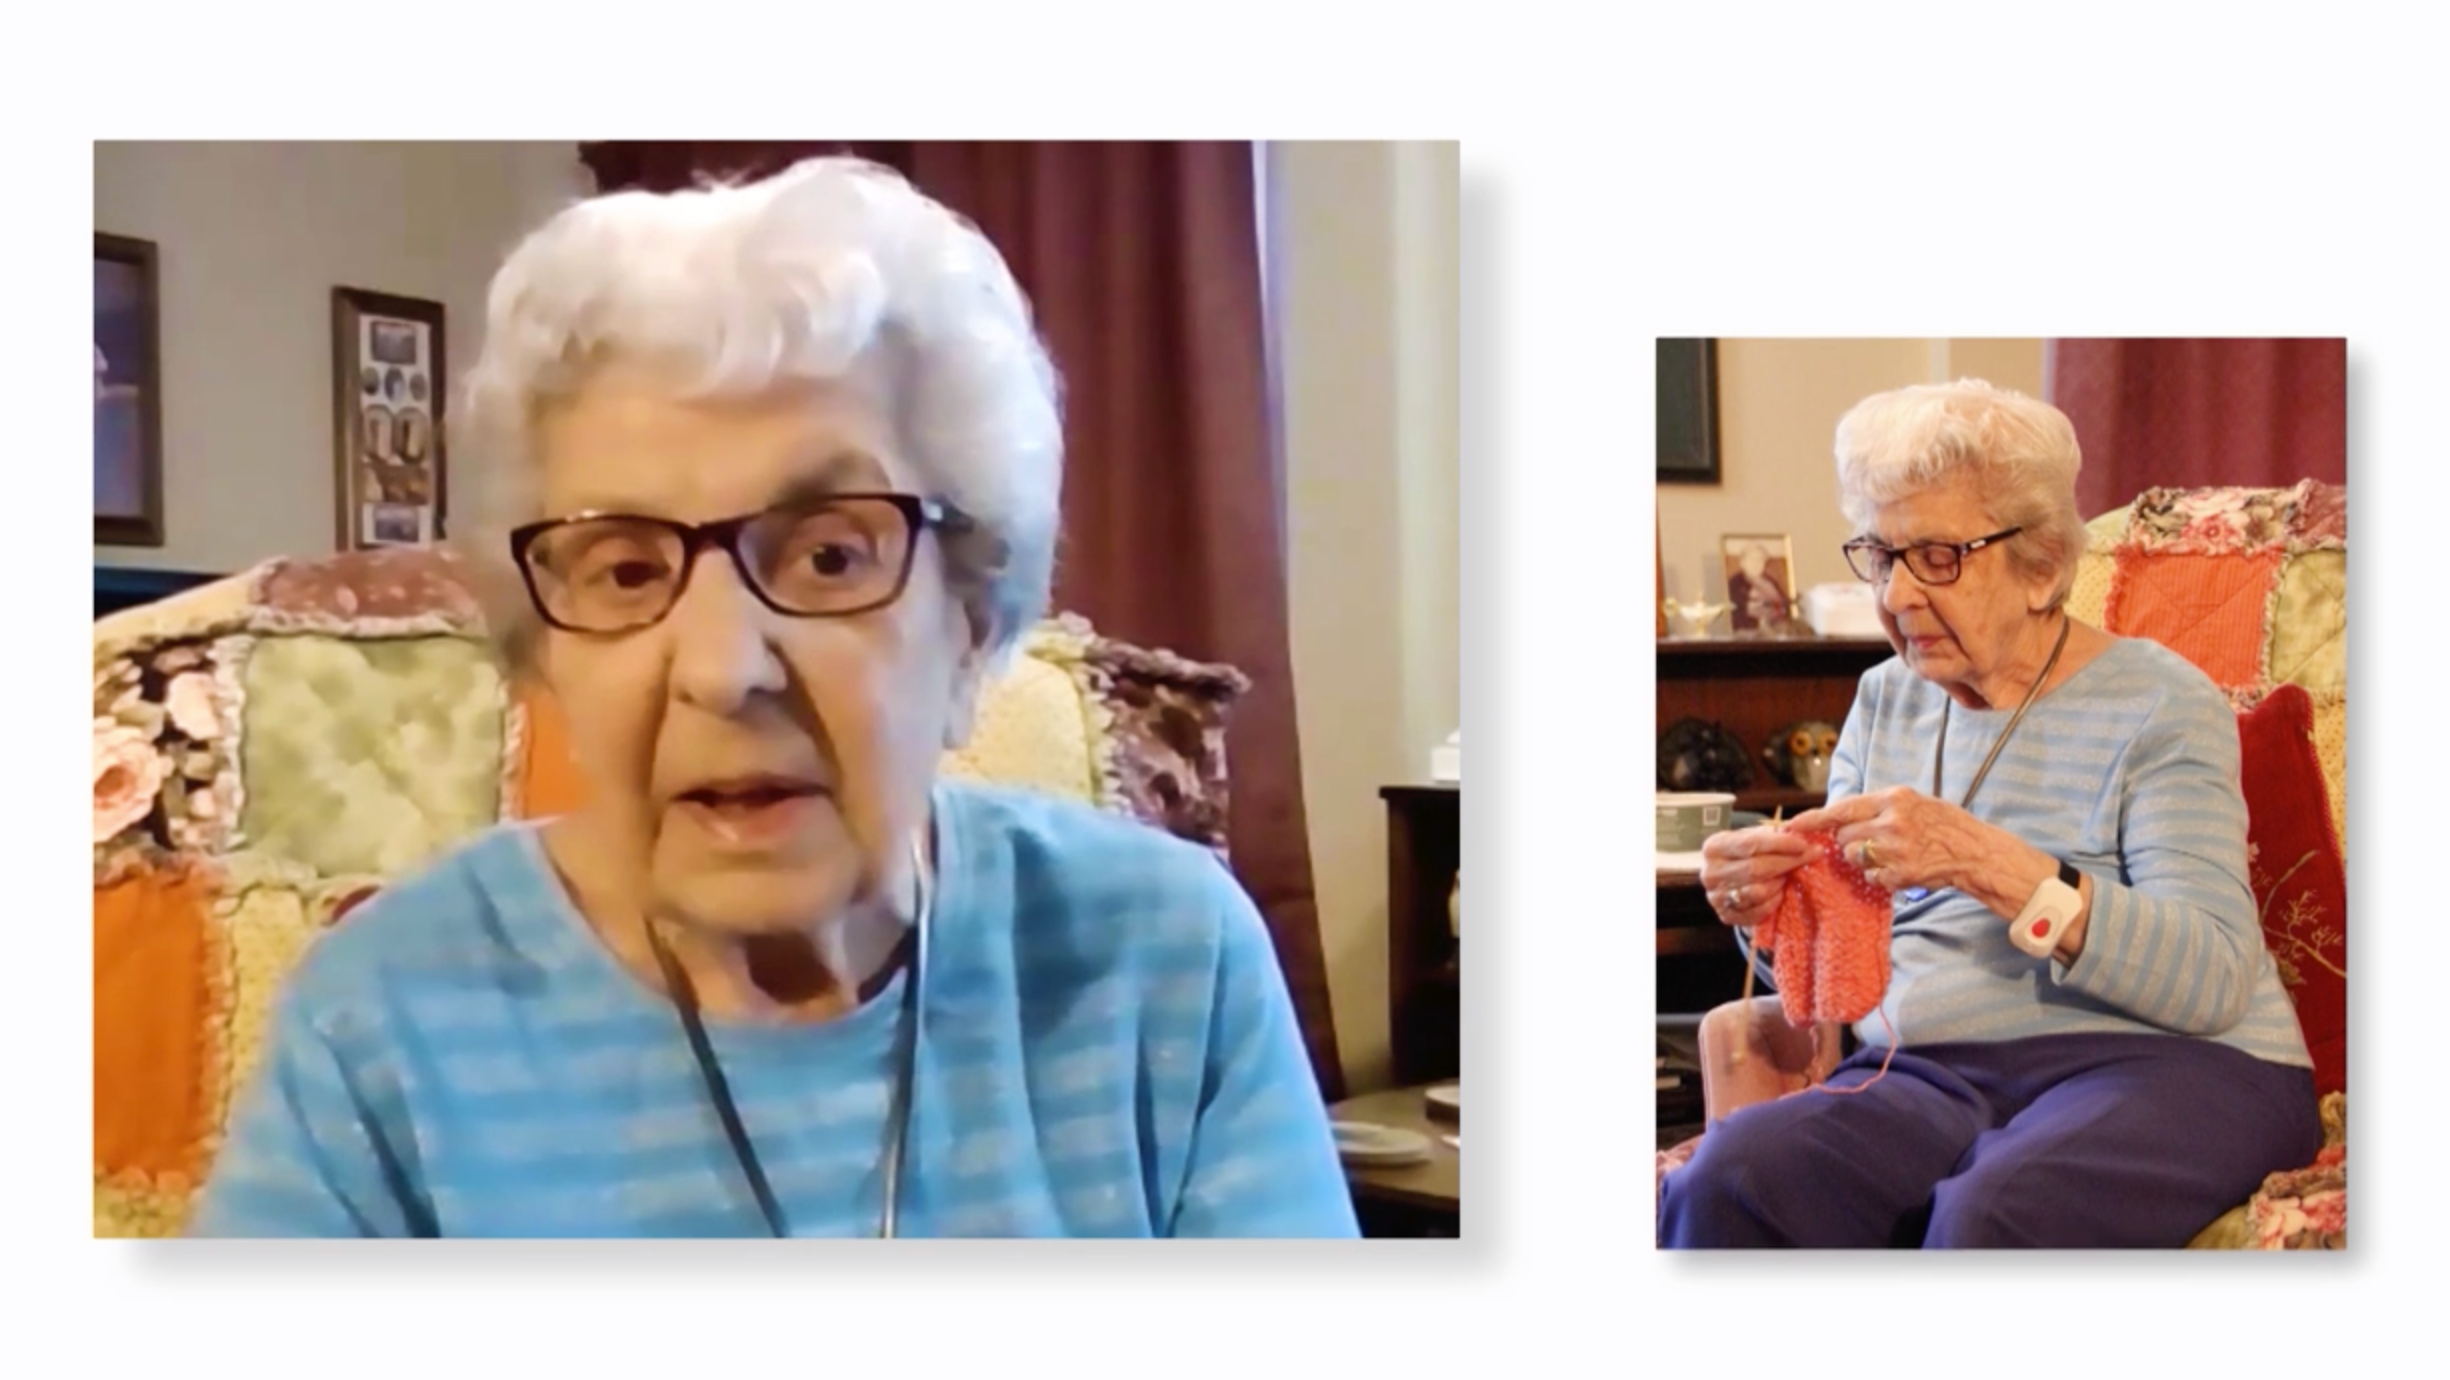 Resident Trudy Martin on a Zoom call in the commercial